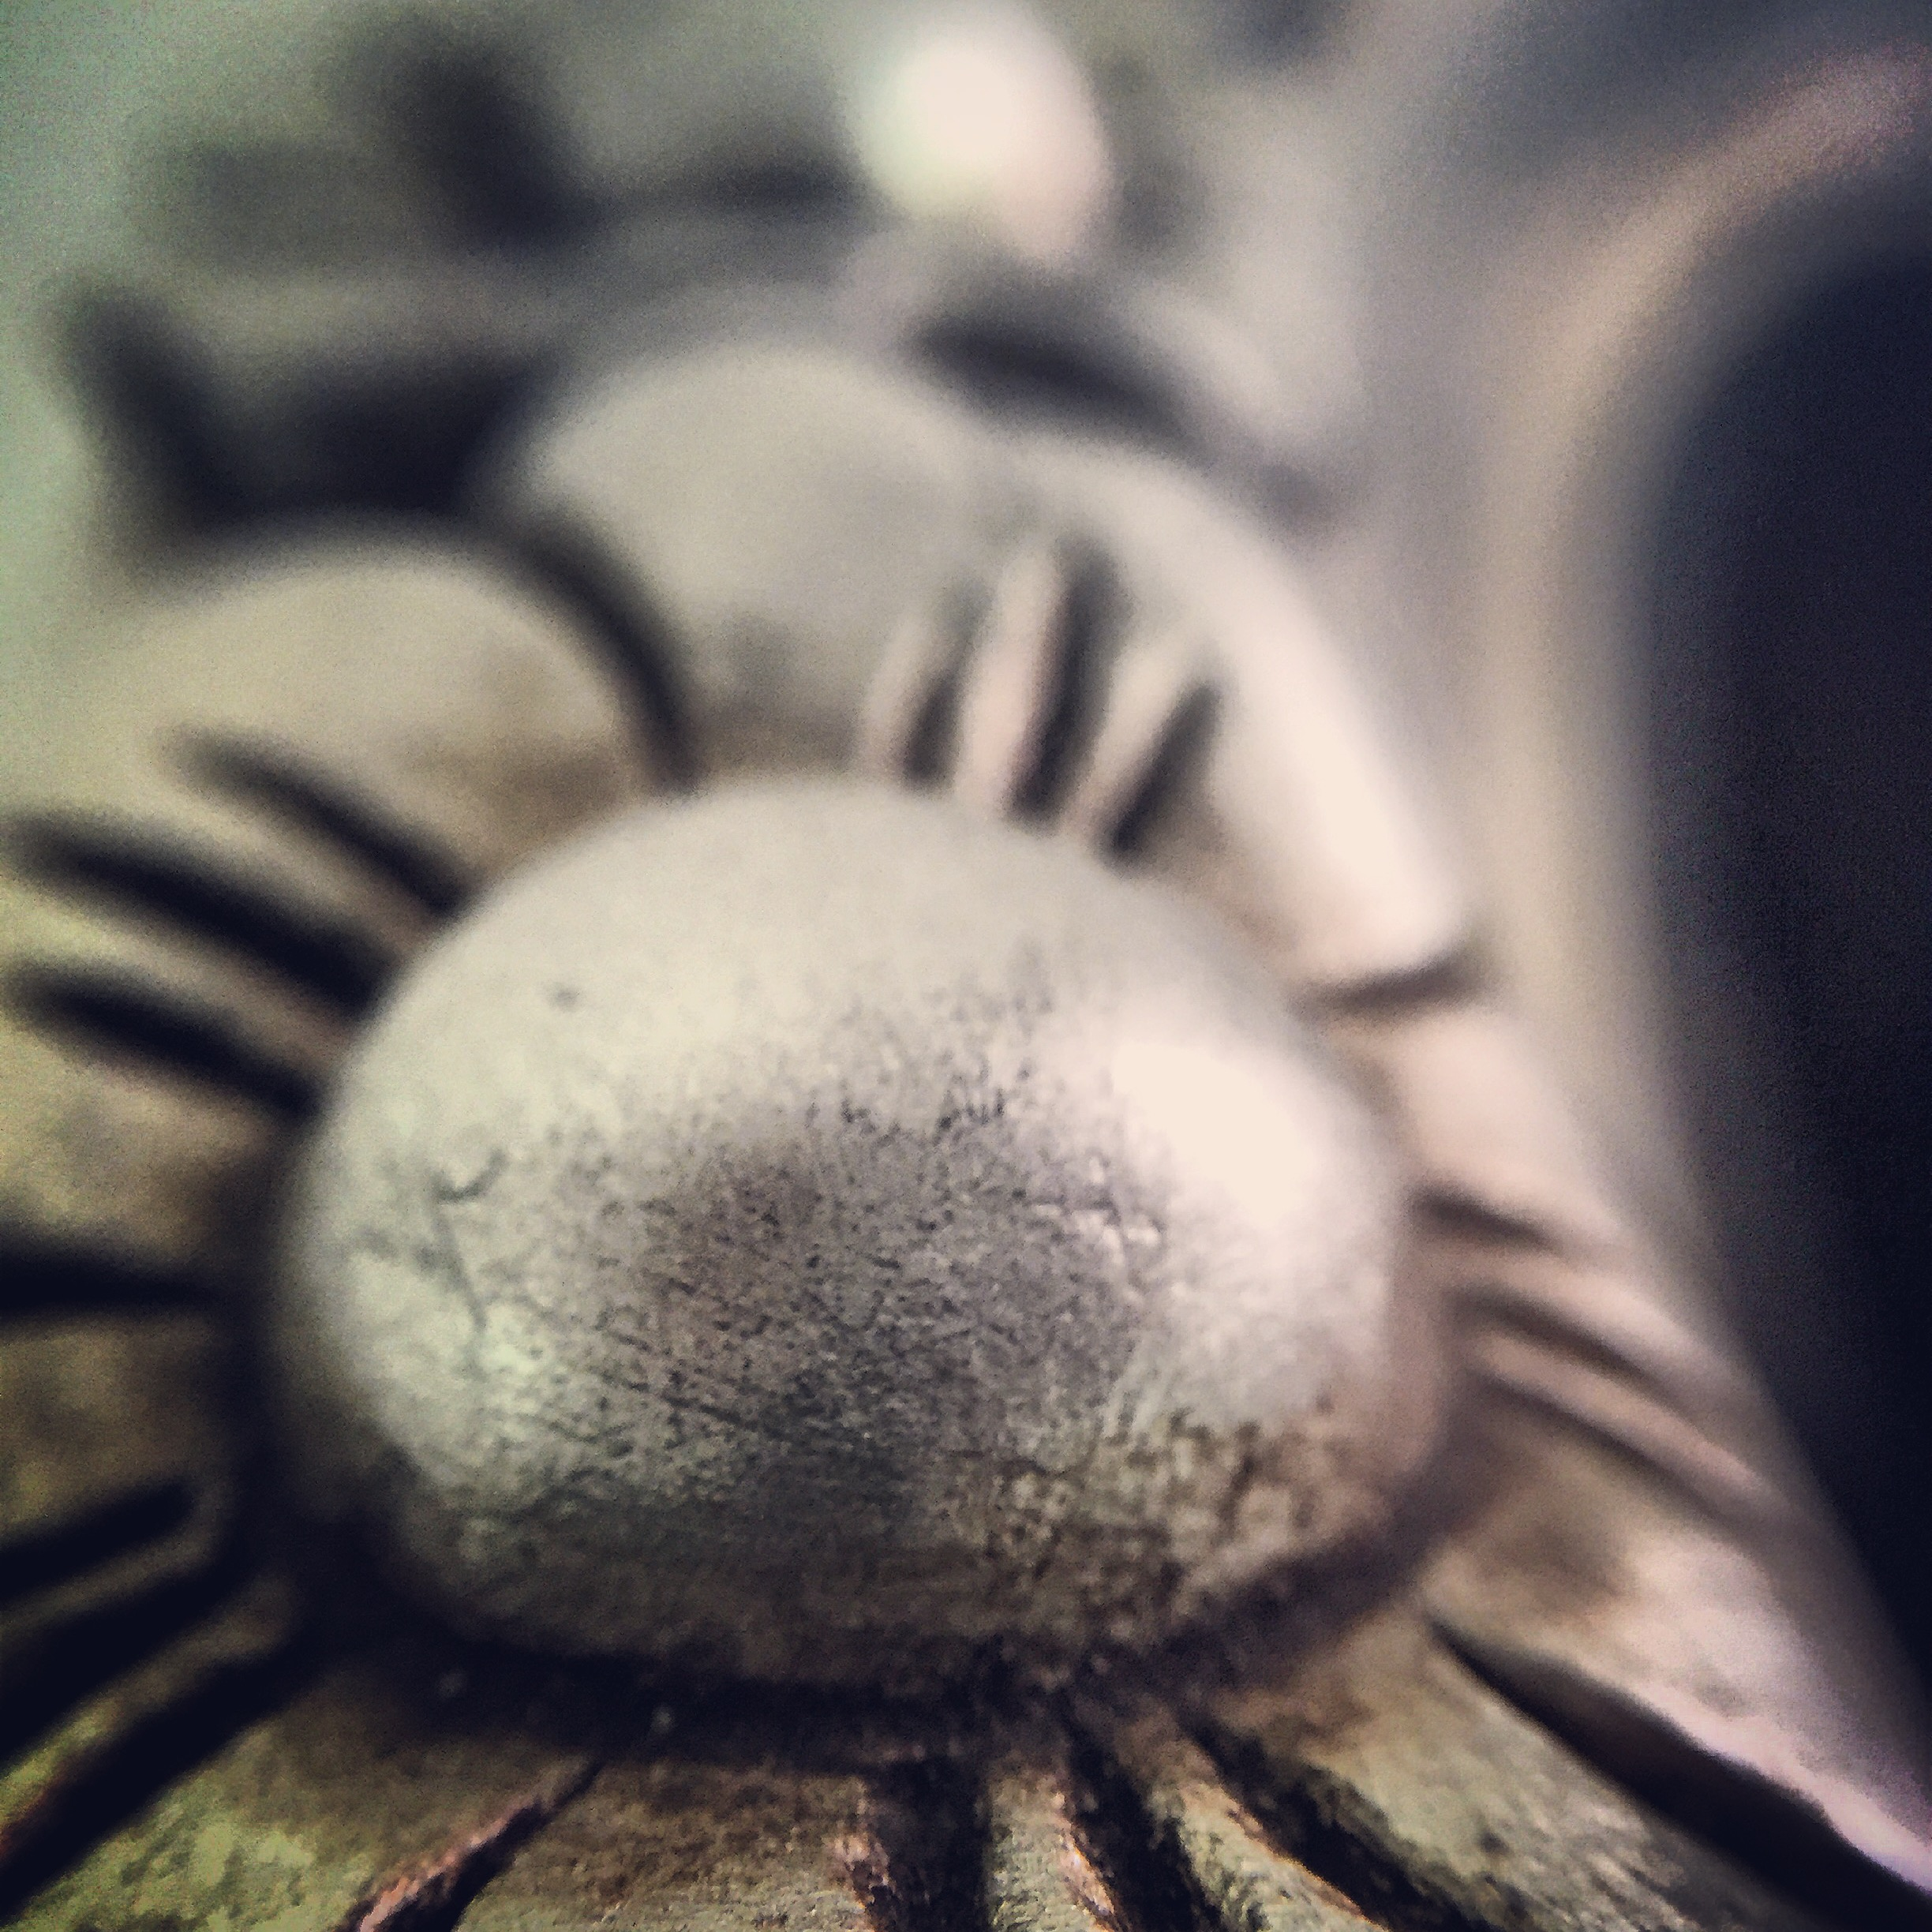 Macro photo, furniture detail